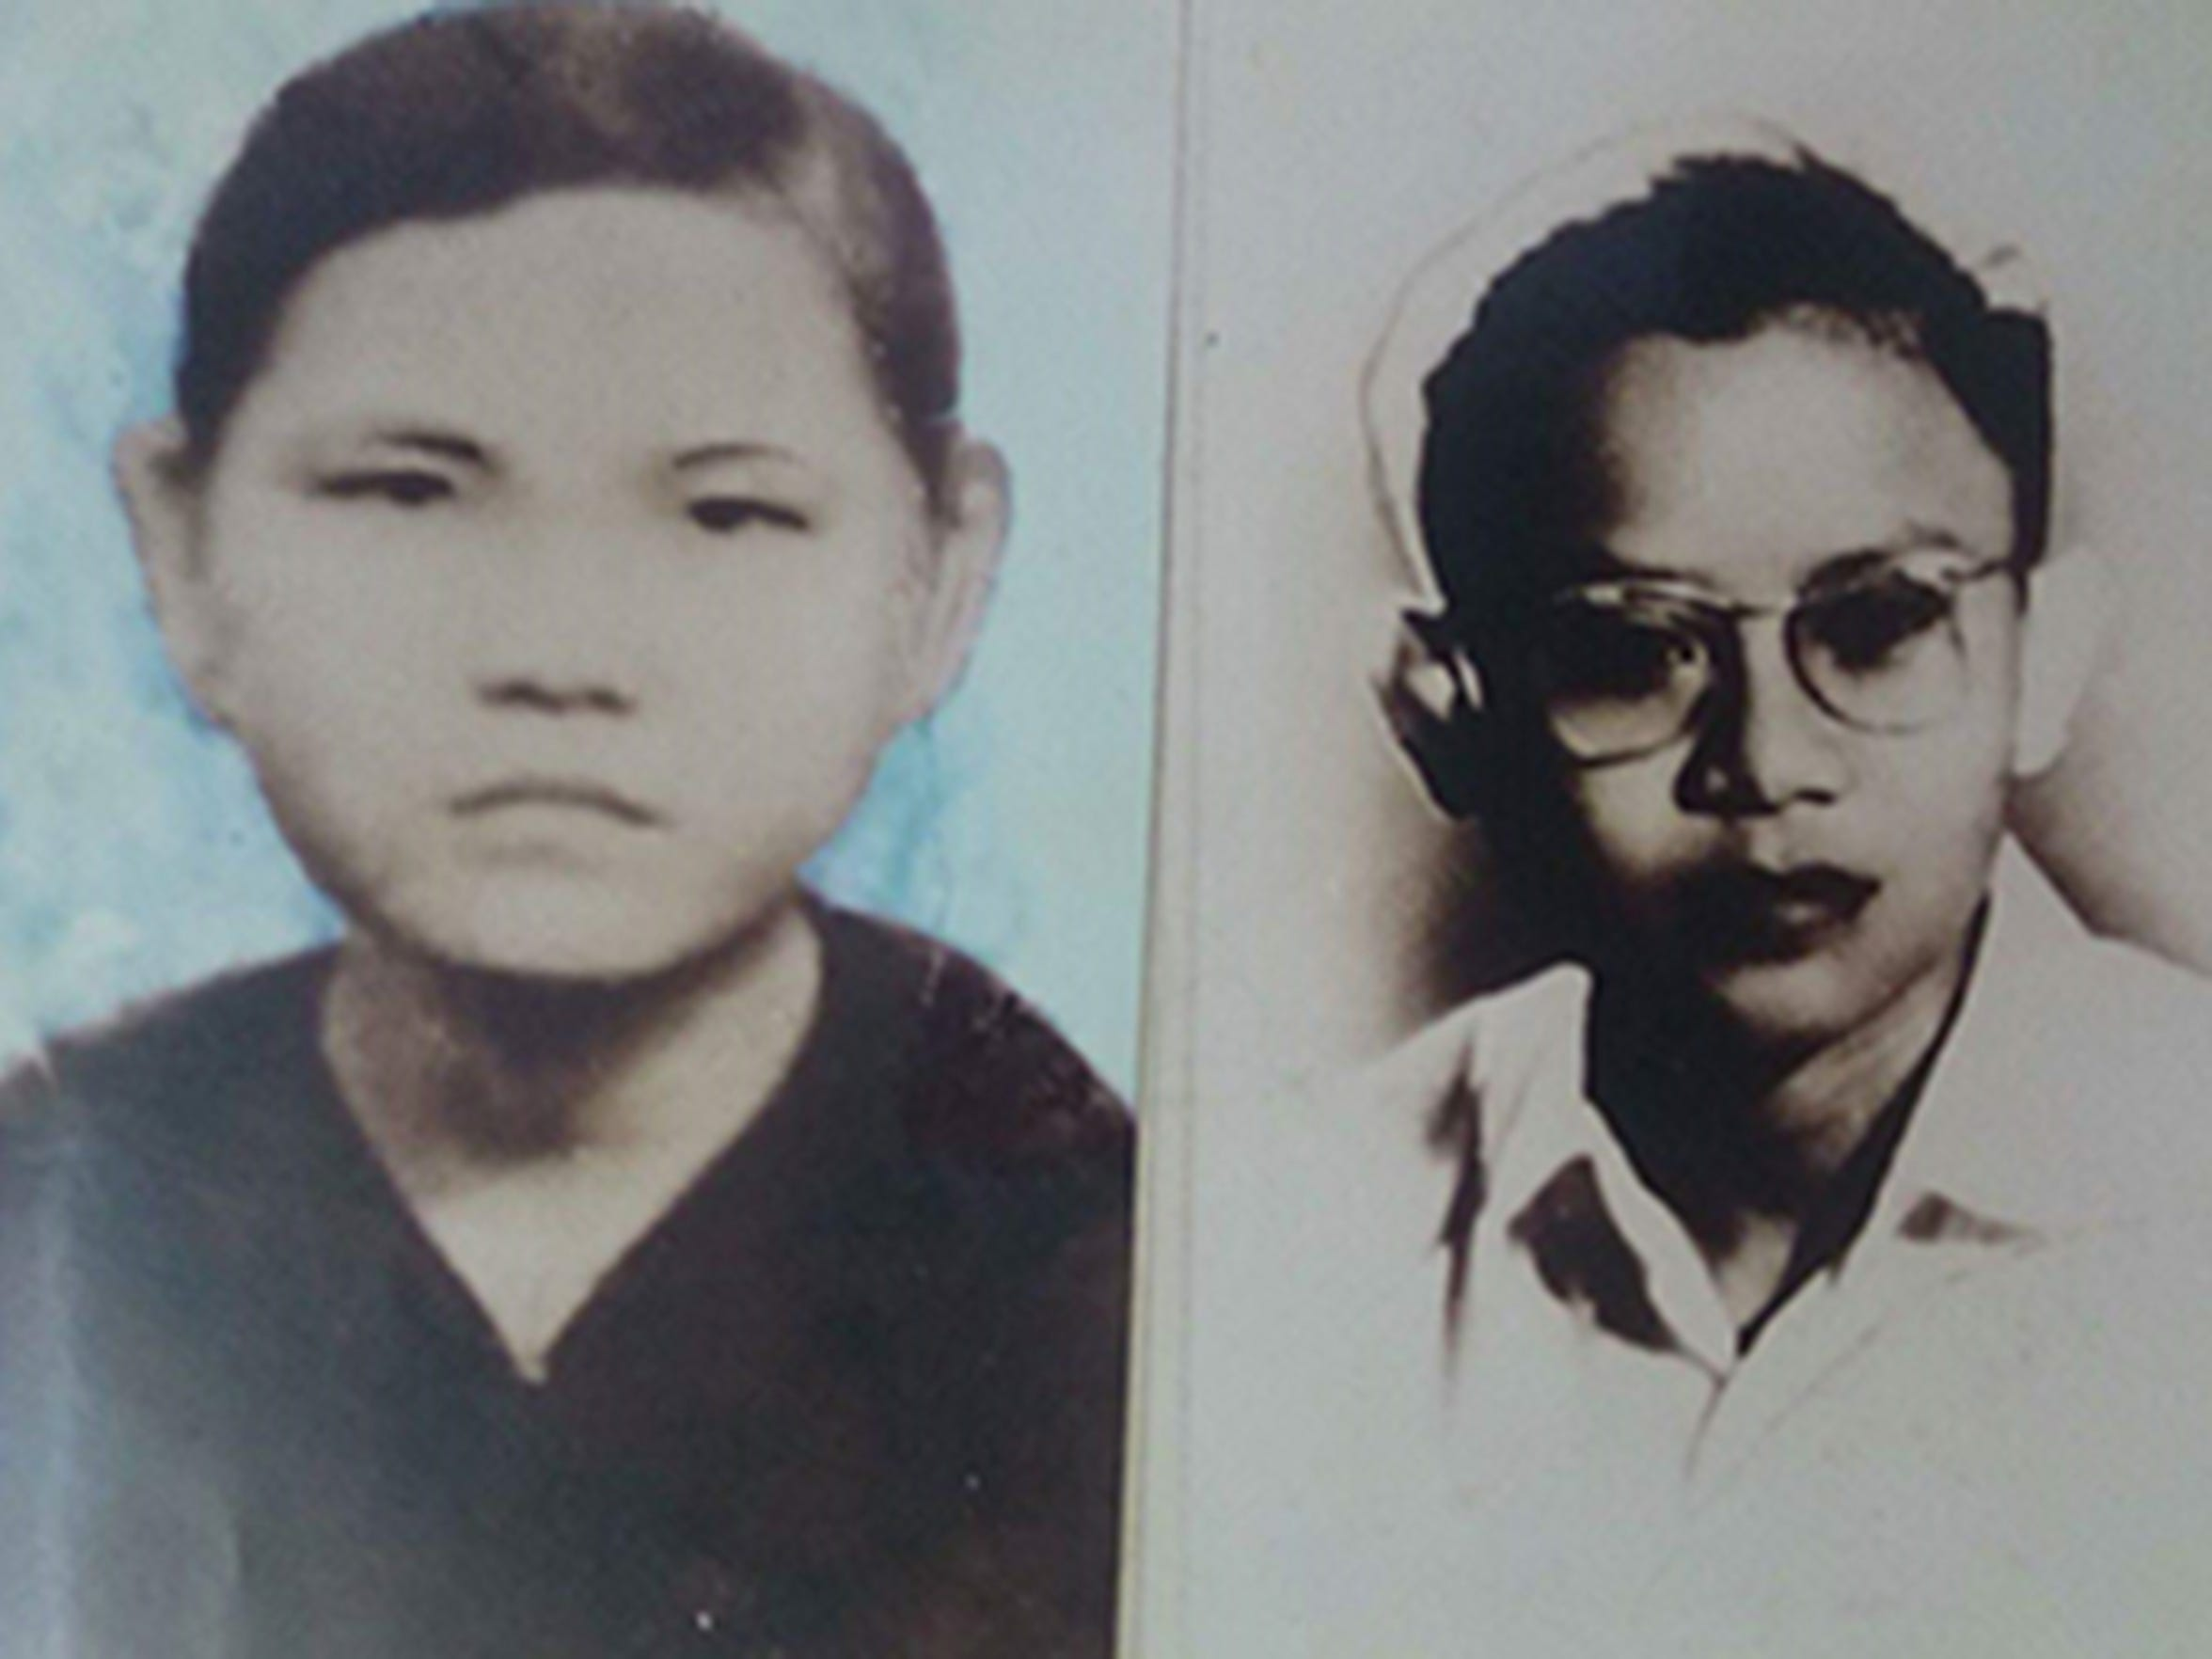 Both of Nguyen Thi Hong Diem's parents were killed fighting for the Viet Cong.